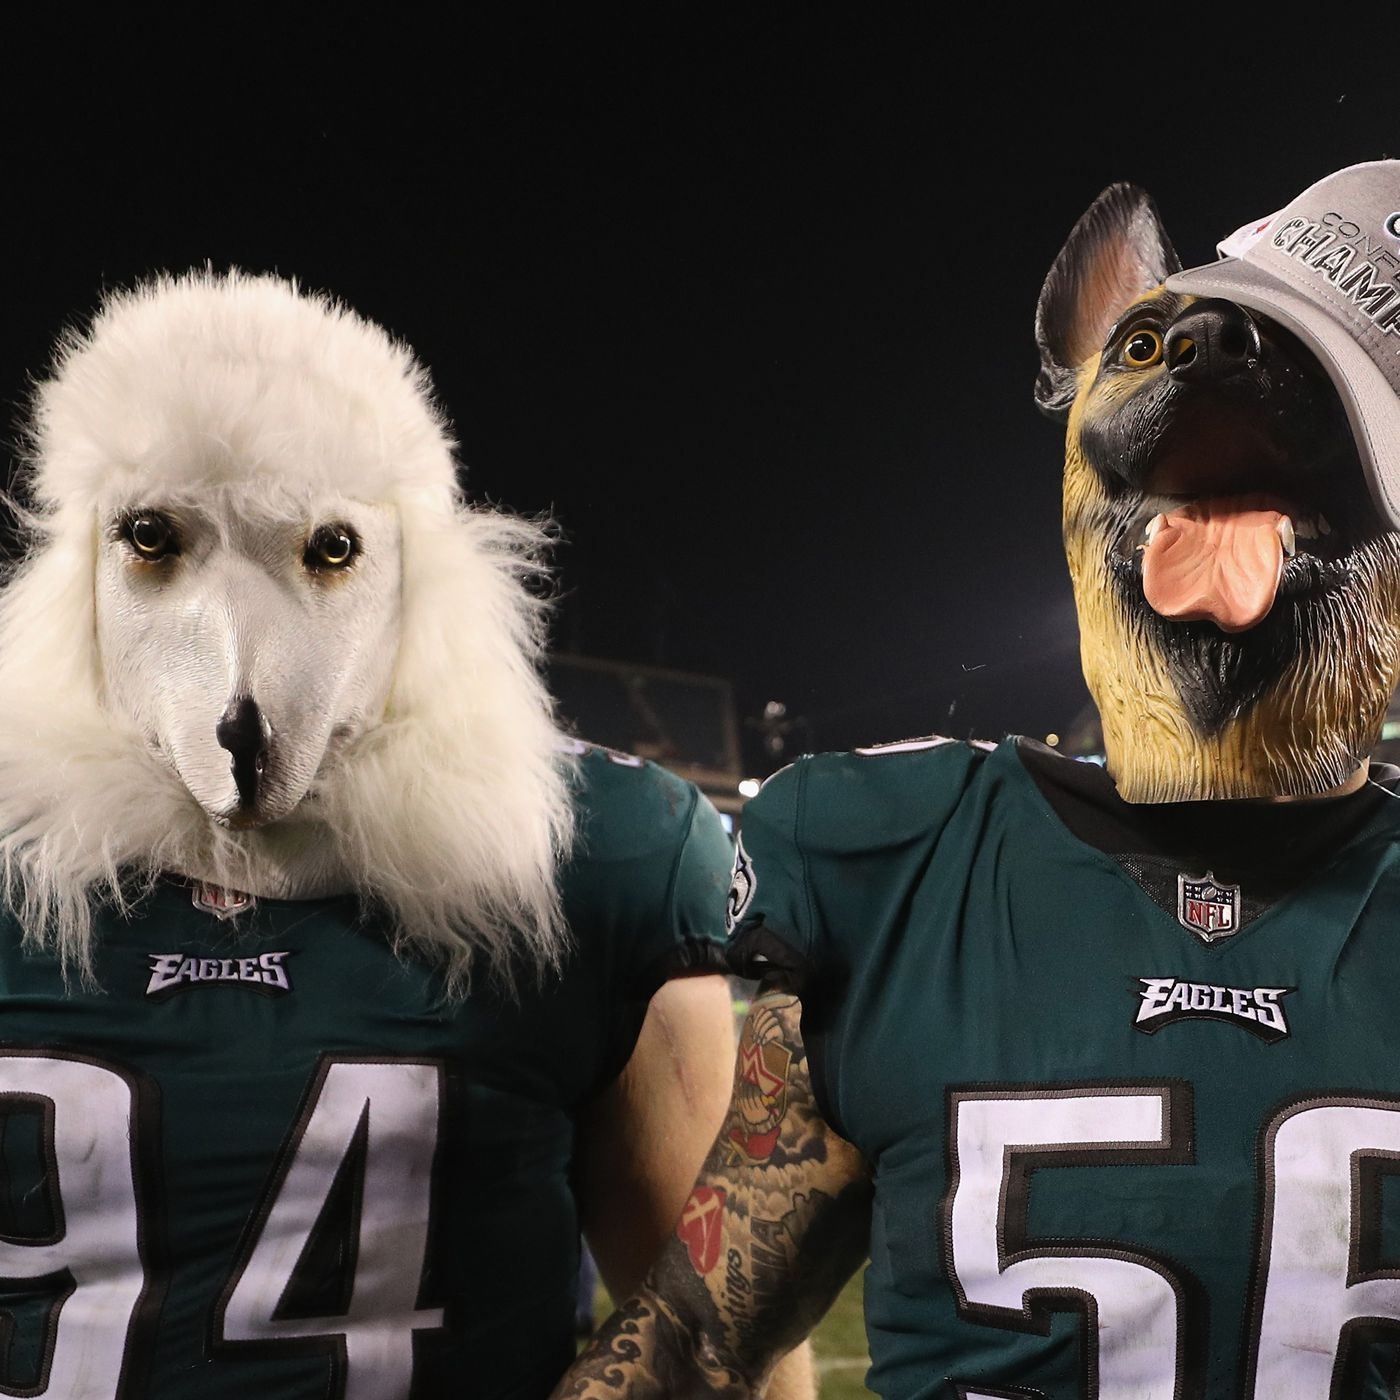 577b45d1a6d Super Bowl 2018 odds: Eagles open as underdogs to Patriots ...